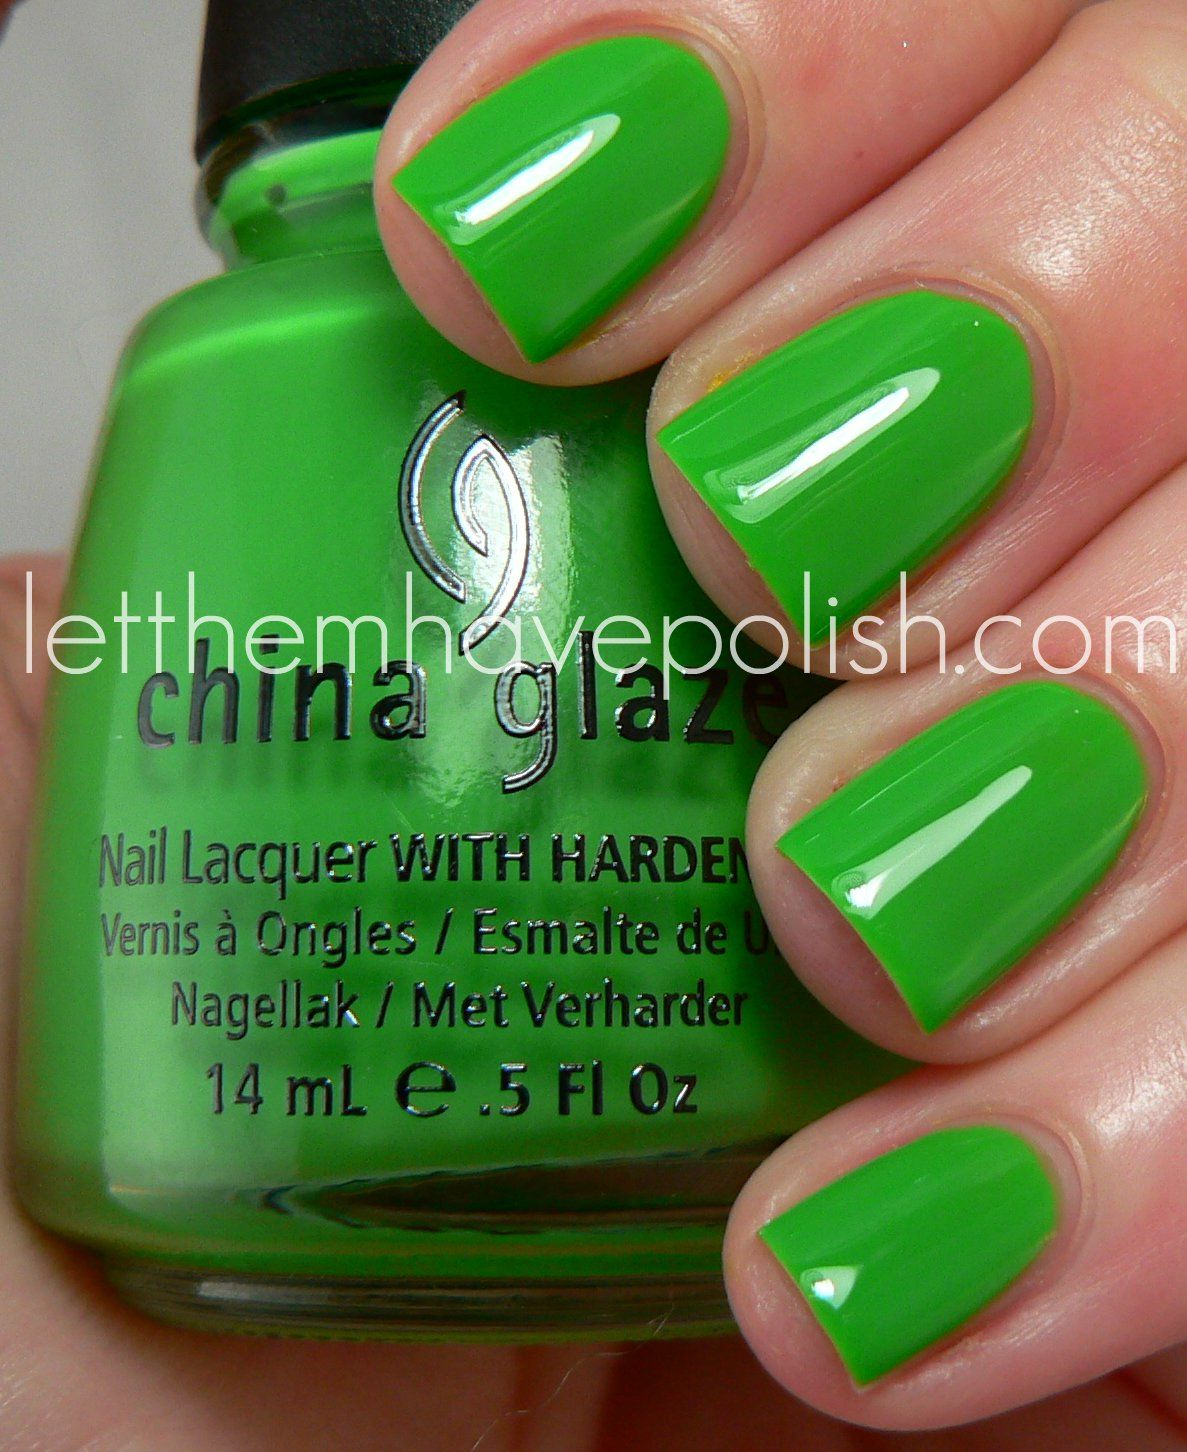 China Glaze - Gaga For Green | My Polish Stash List | Pinterest ...